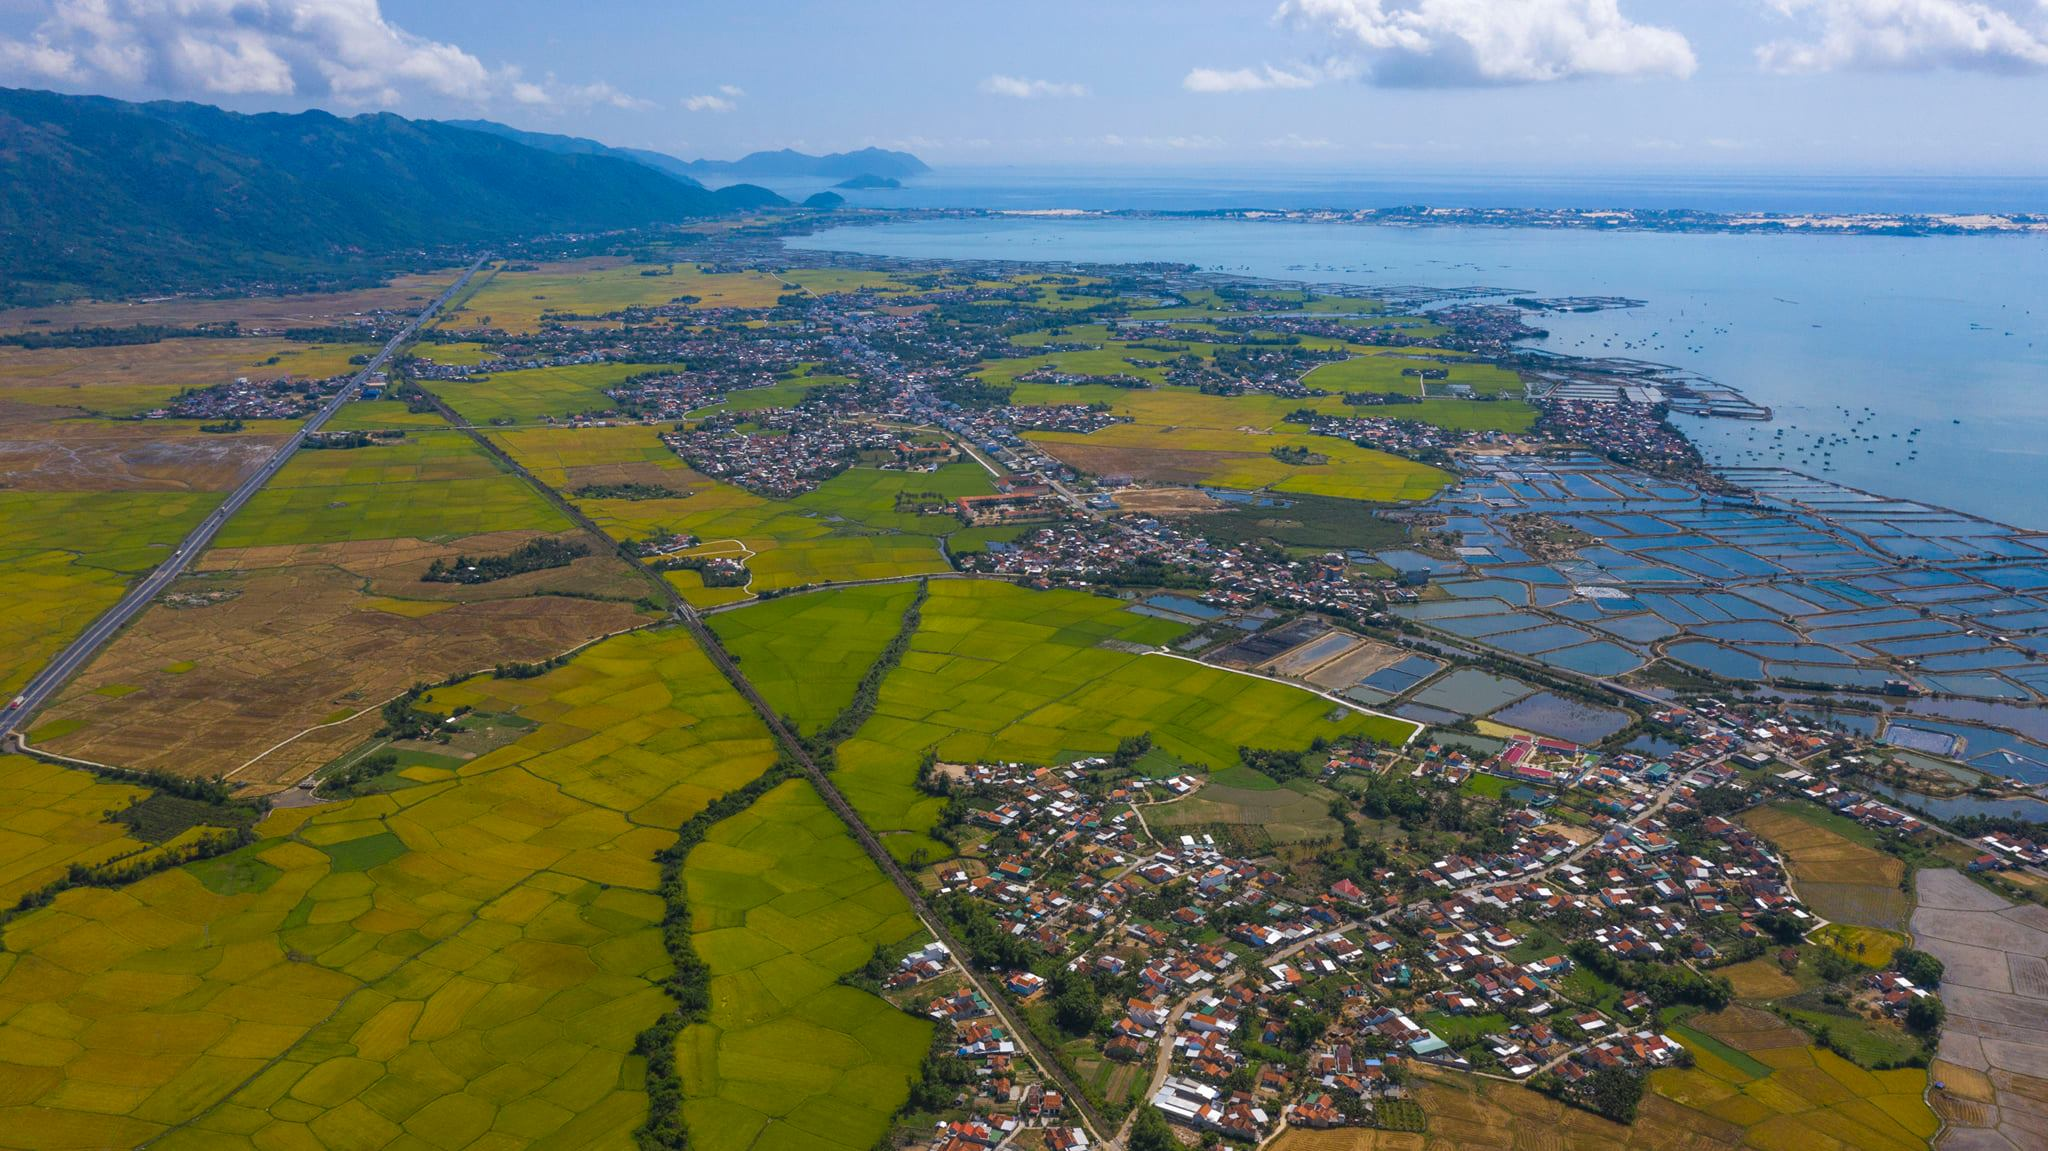 A bird-eye photo taken by Quang Dinh on his trip through the coastal central province of Khanh Hoa